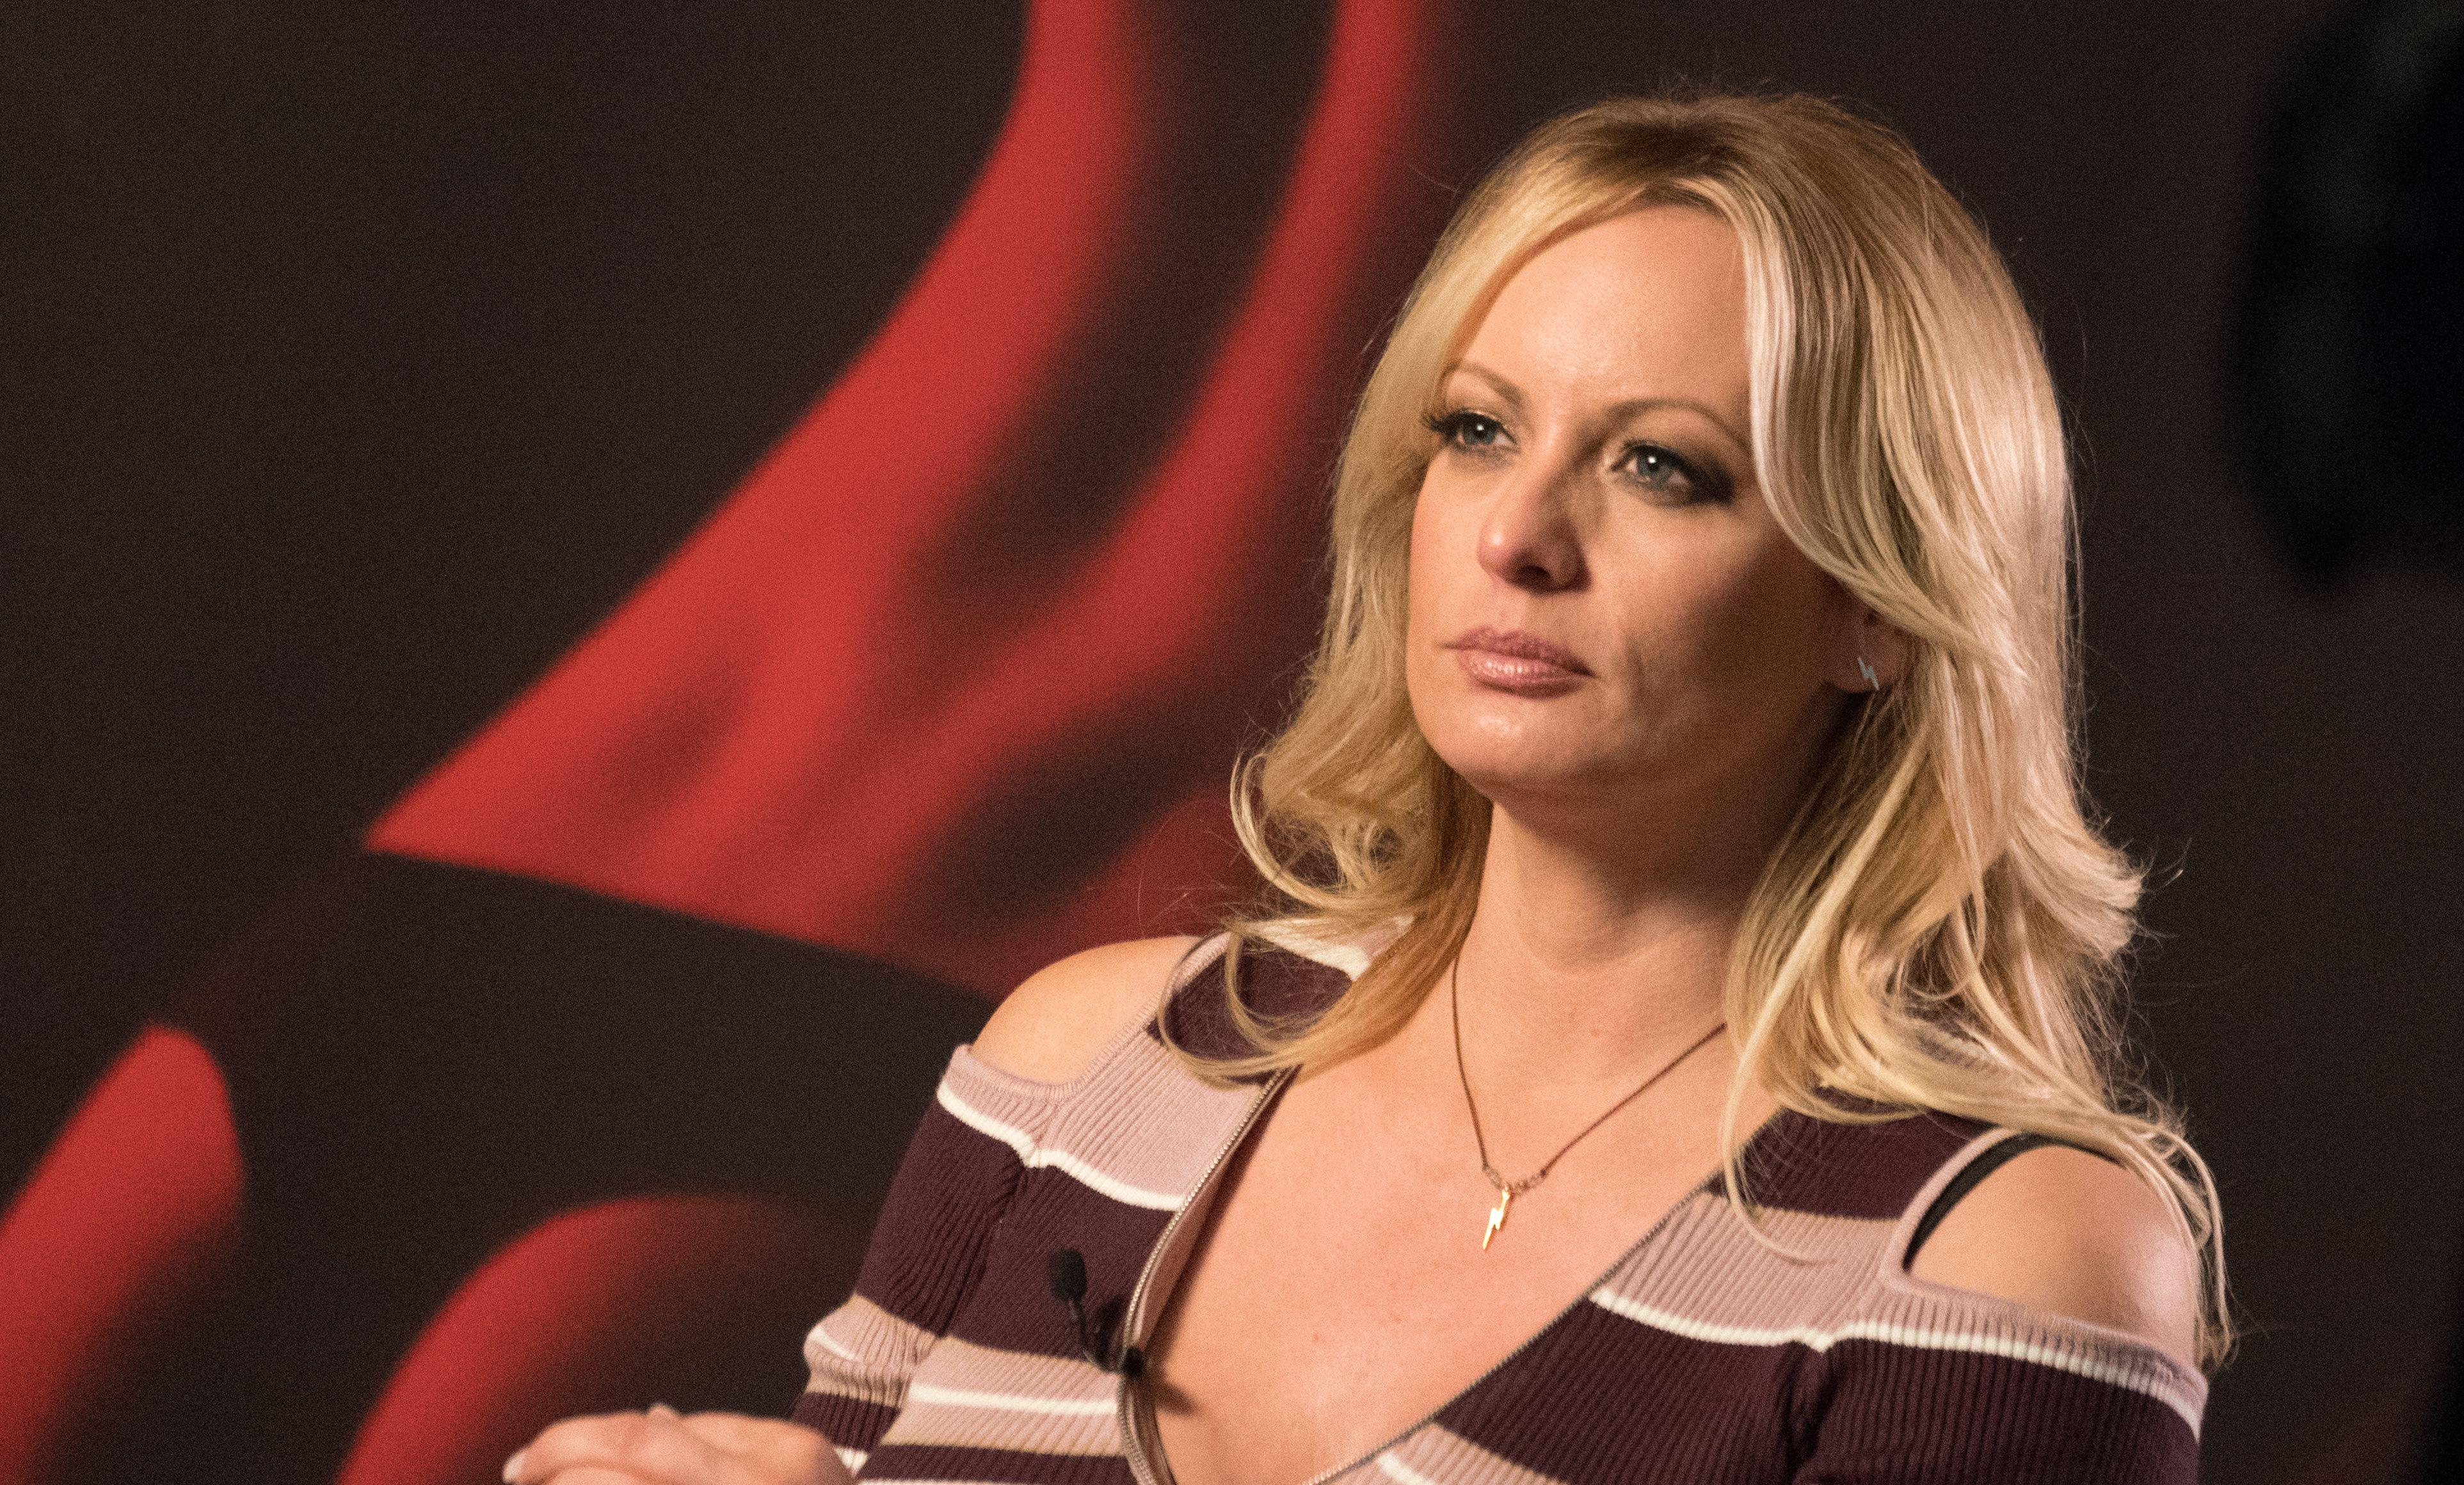 Stormy Daniels during an interview in Berlin on October 11, 2018.